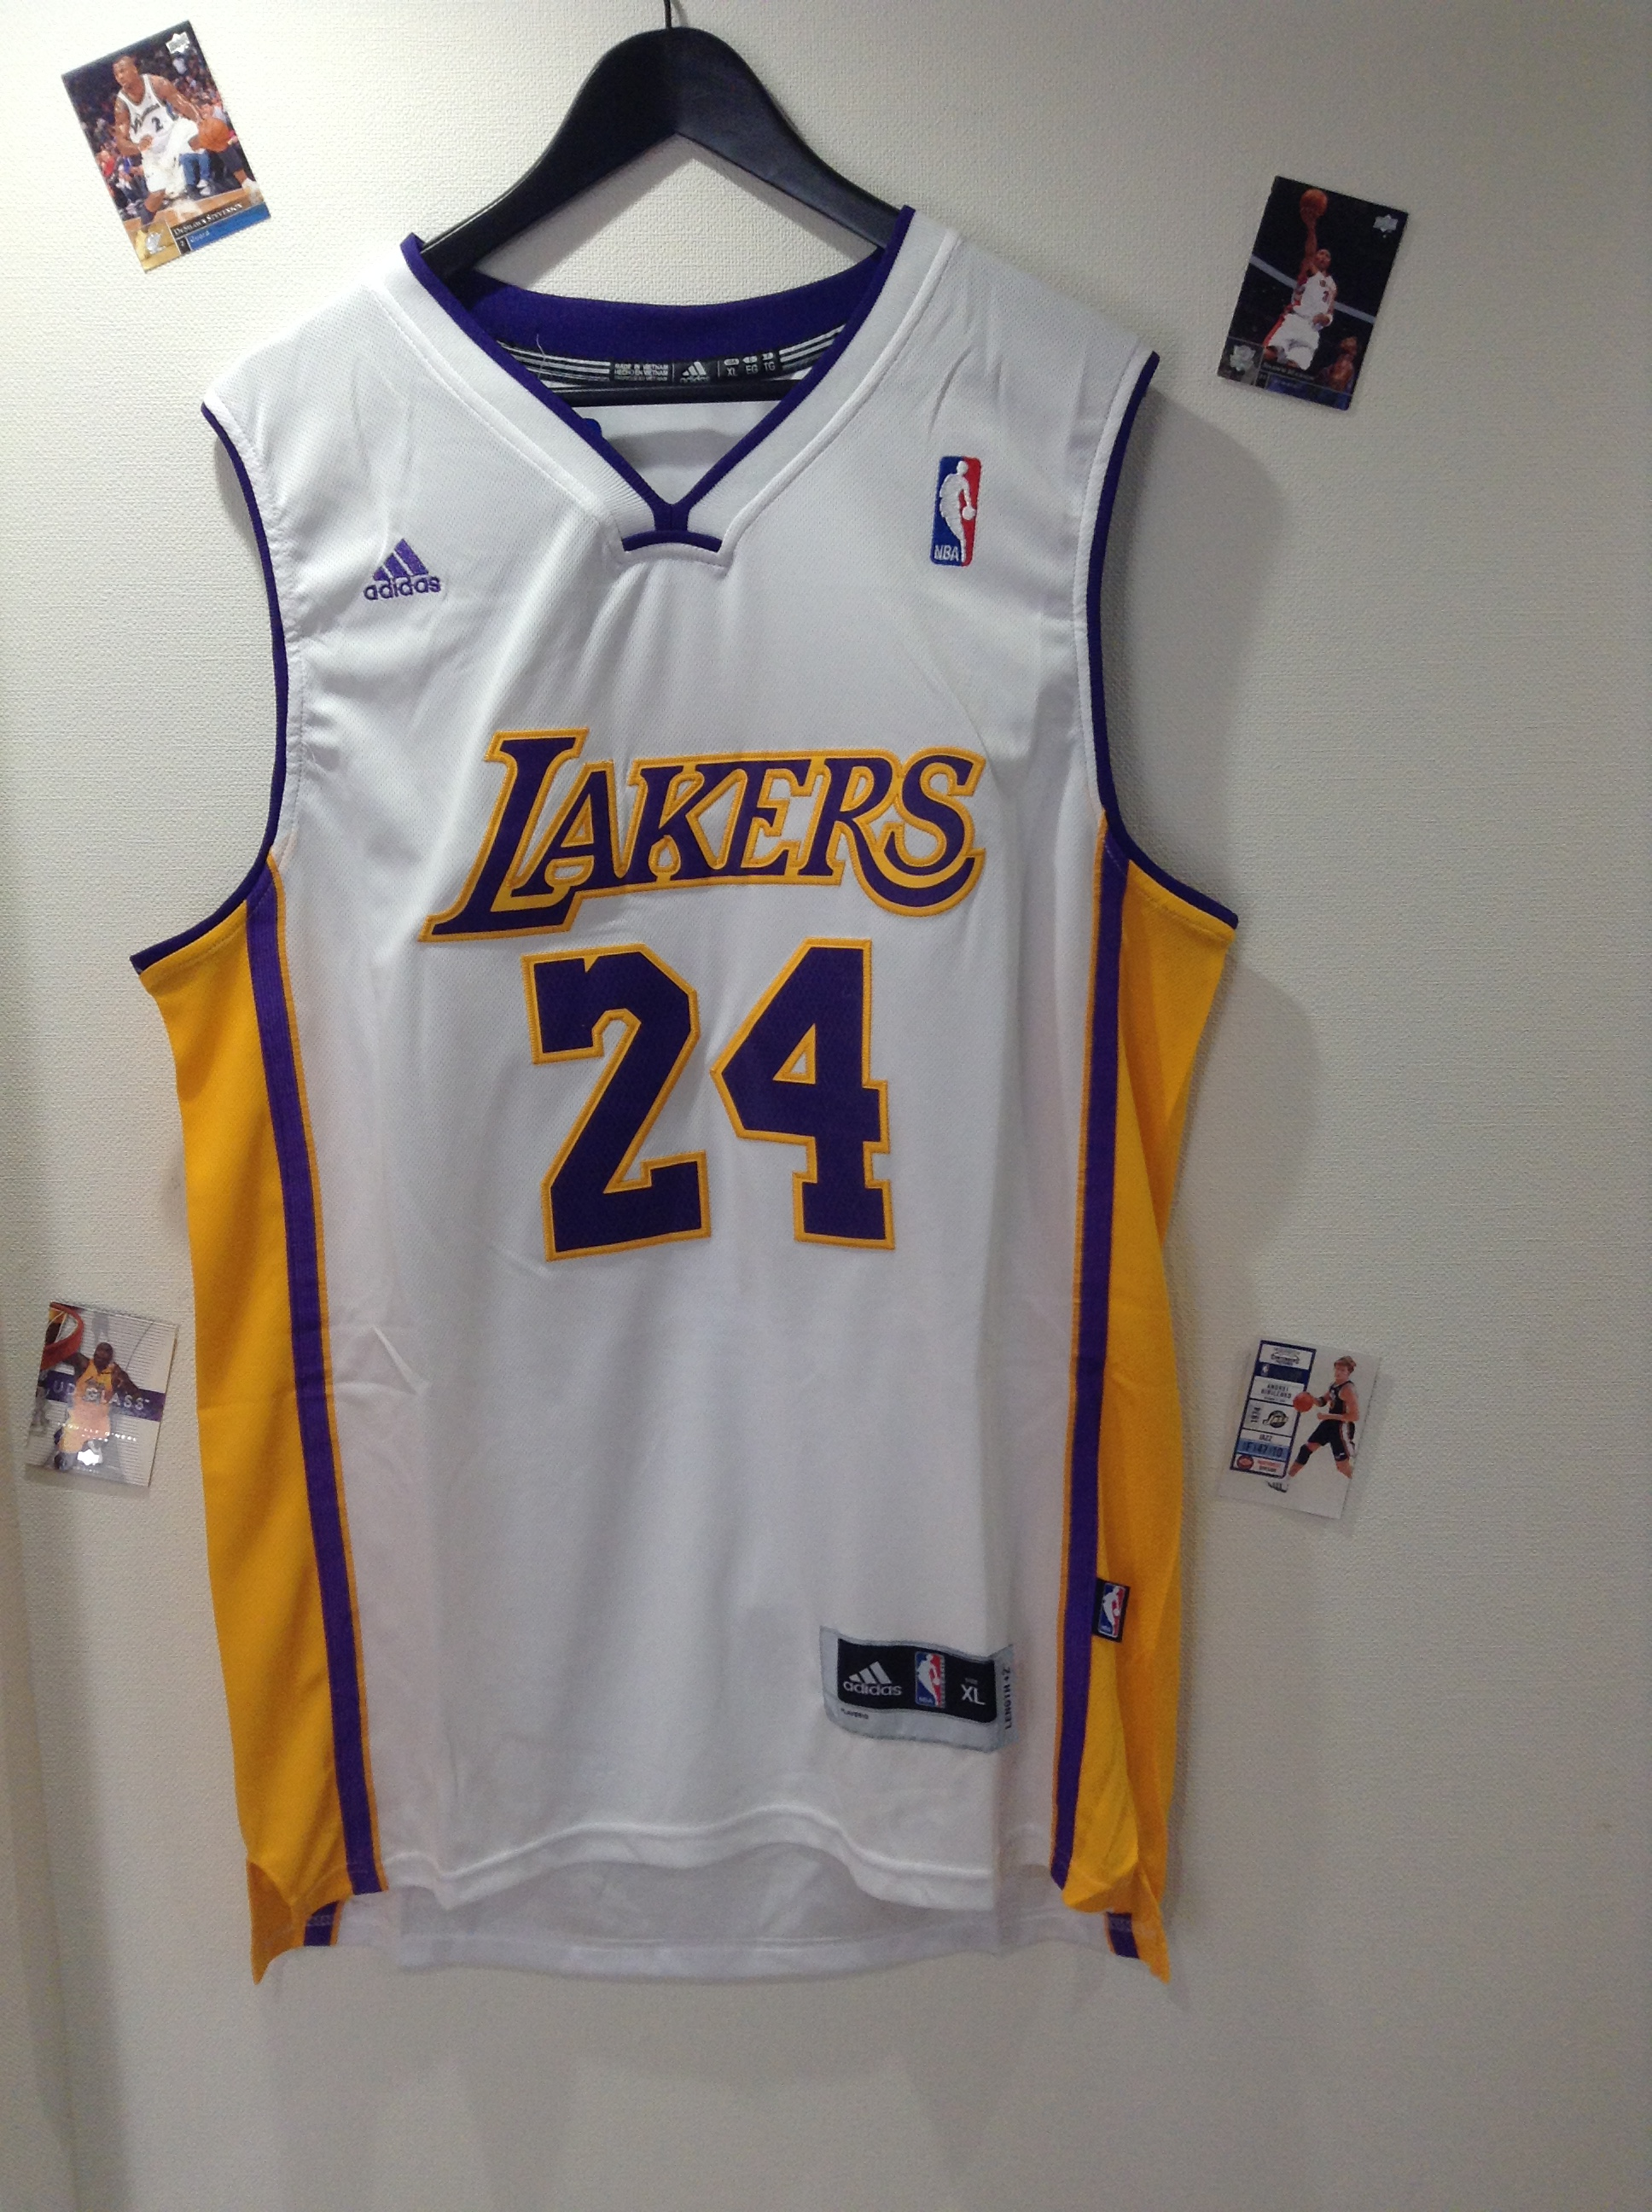 LOCKER Kobe Bean Bryan